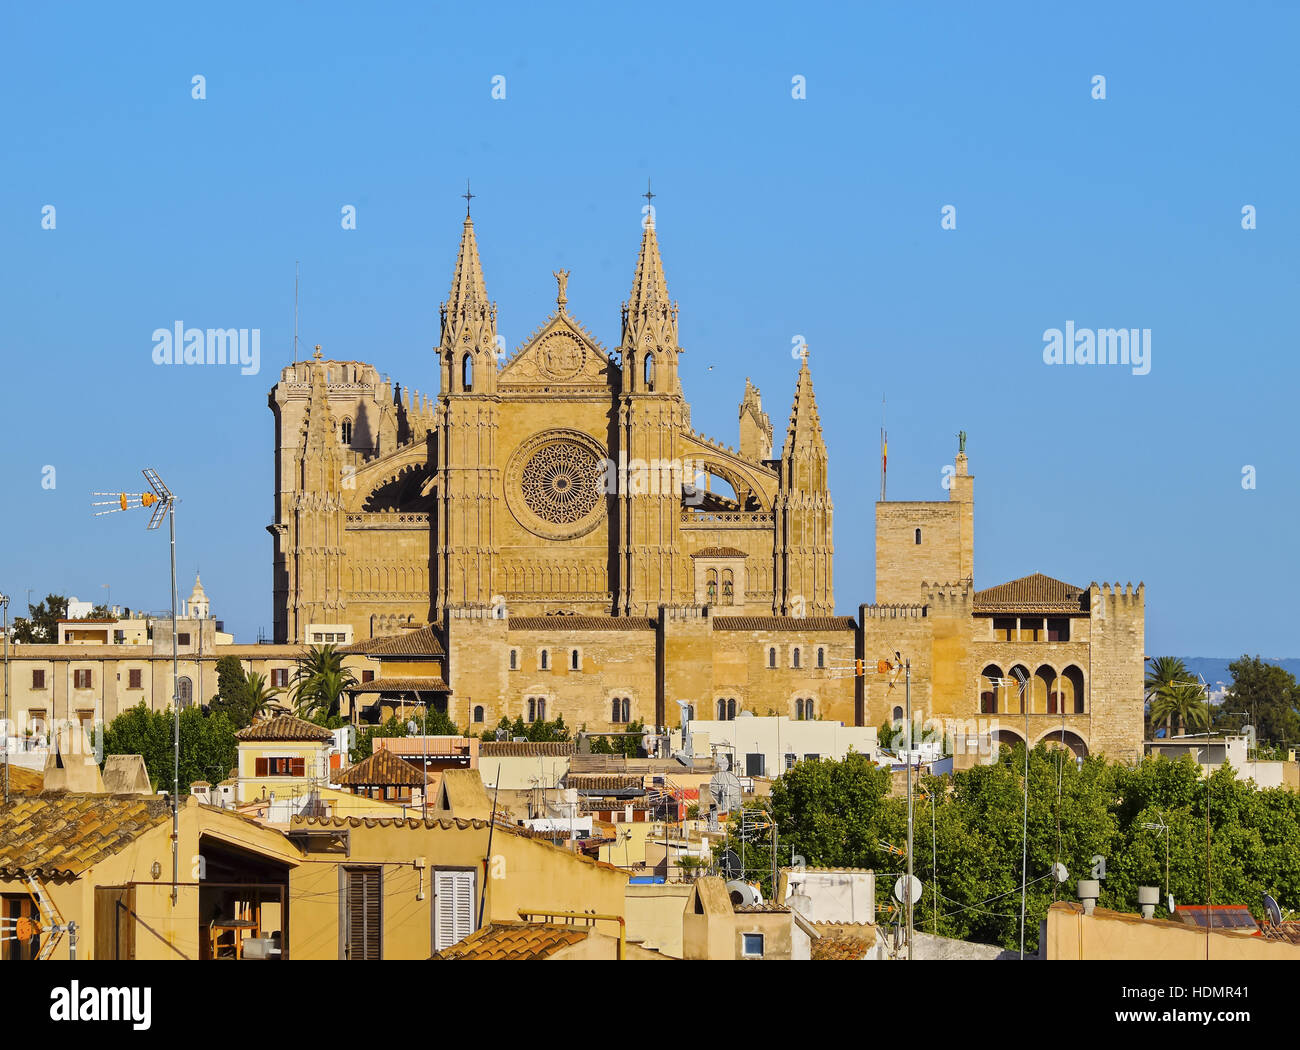 Cathedral La Seu, Palma de Mallorca, La Palma, Balearic Islands, Spain Stock Photo